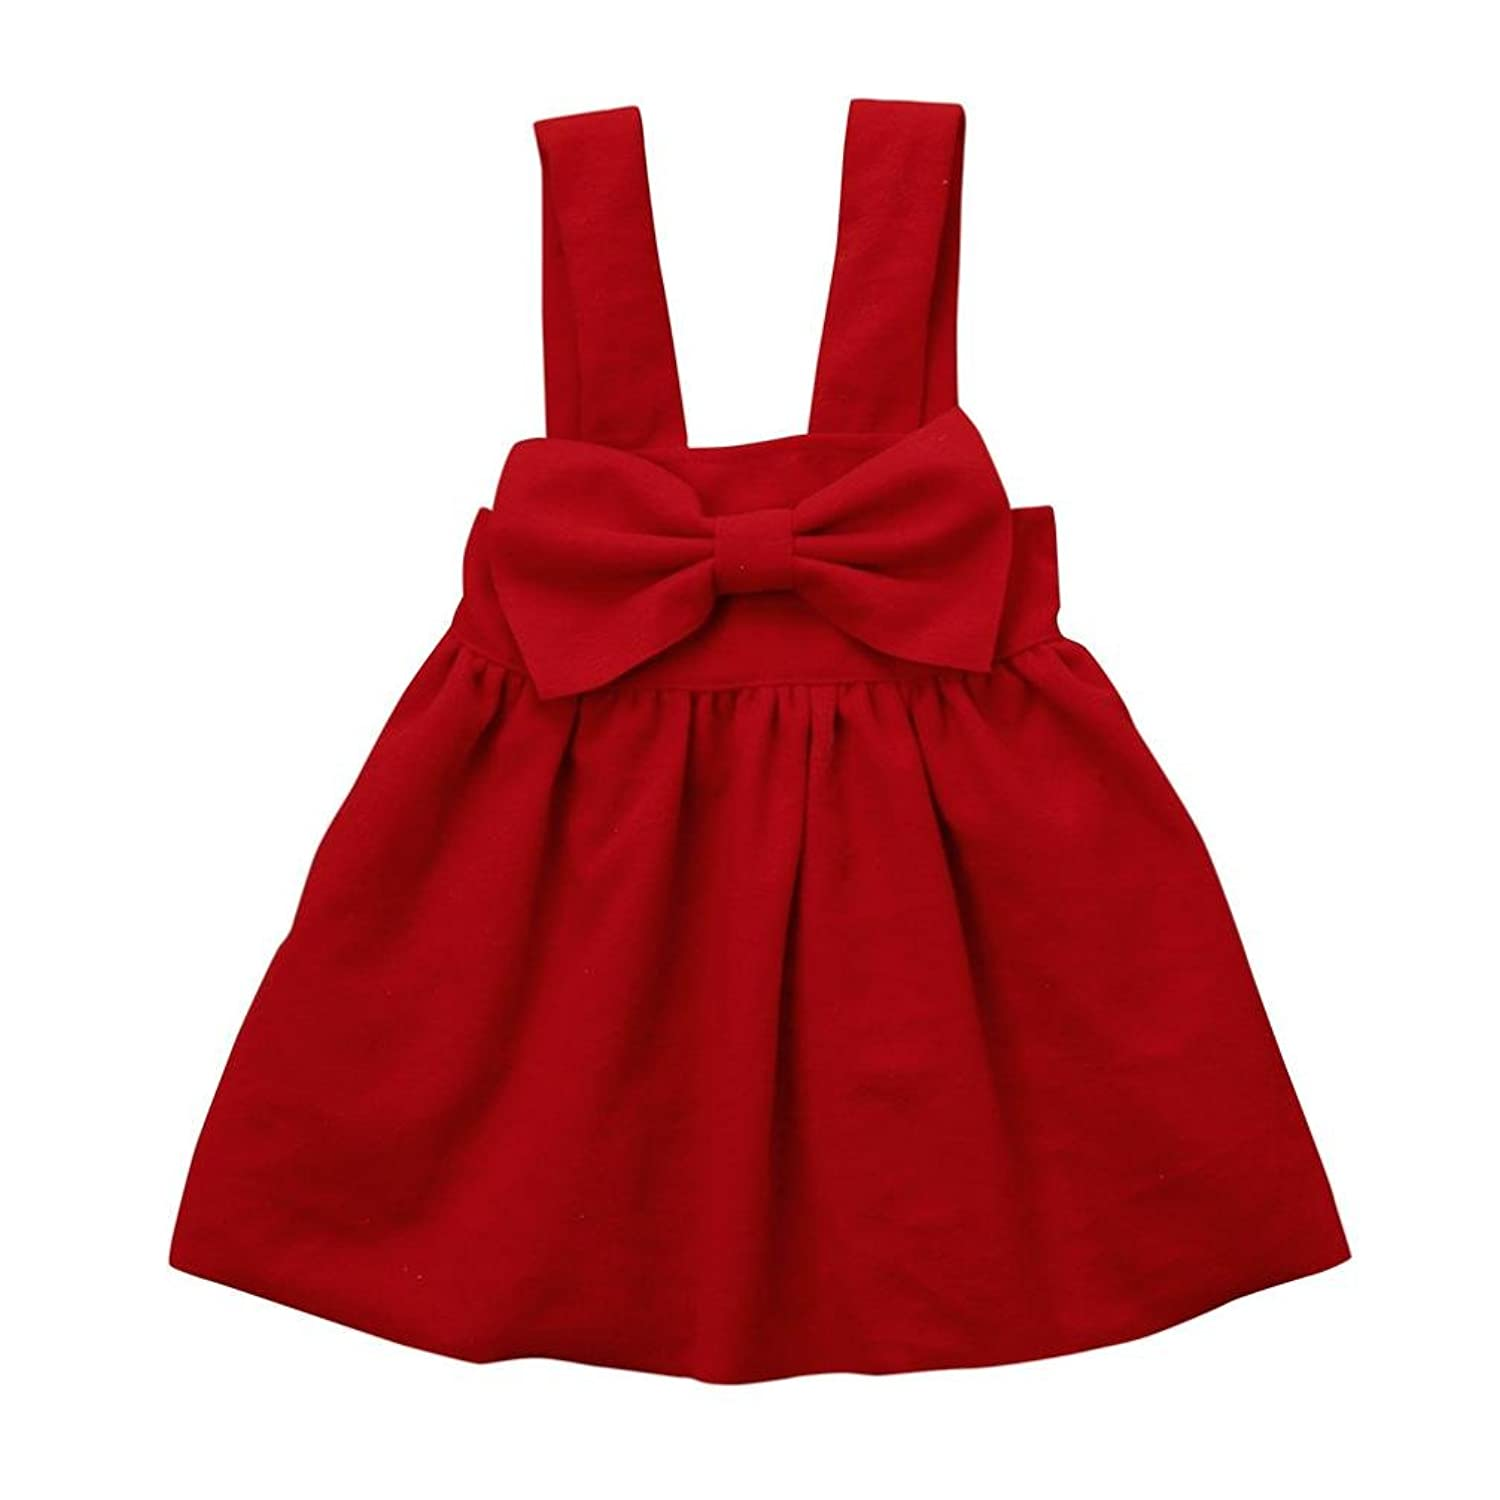 G-real Toddler Little Girls Cute Solid Red Bow Strap Overalls Dress Summer  Princess Dress For 2-7T 9dd6bc67ea39